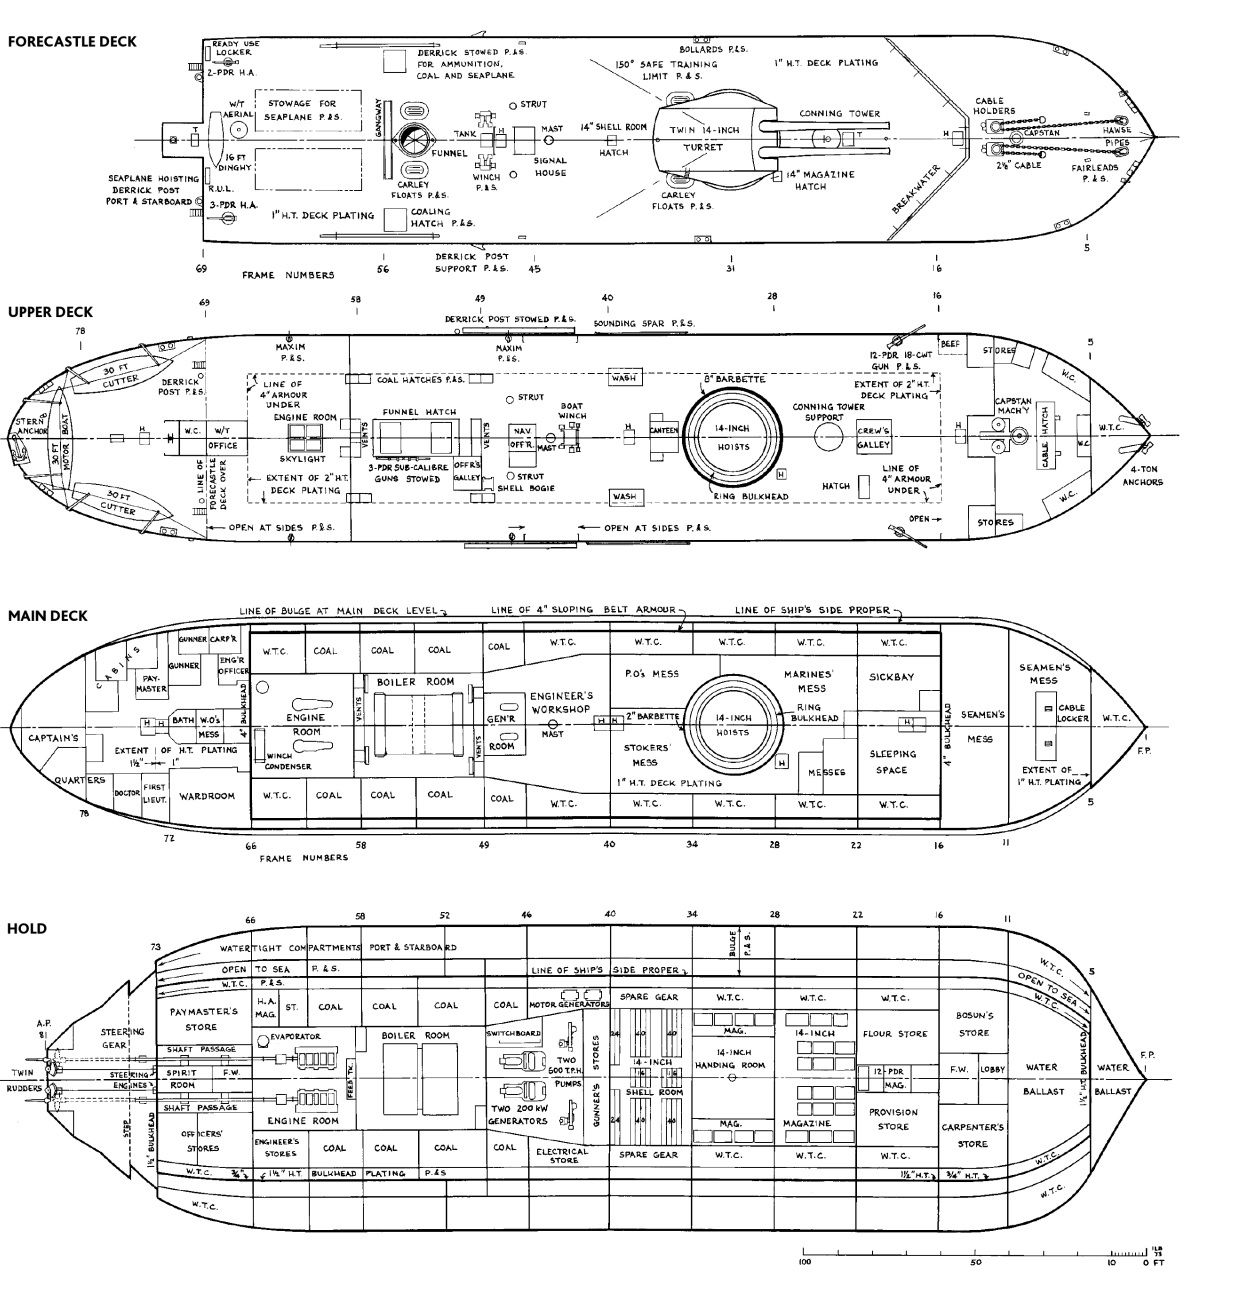 uss monitor diagram jeep cherokee wiring diagrams deck plans of the british 39roberts 39 1915 ship